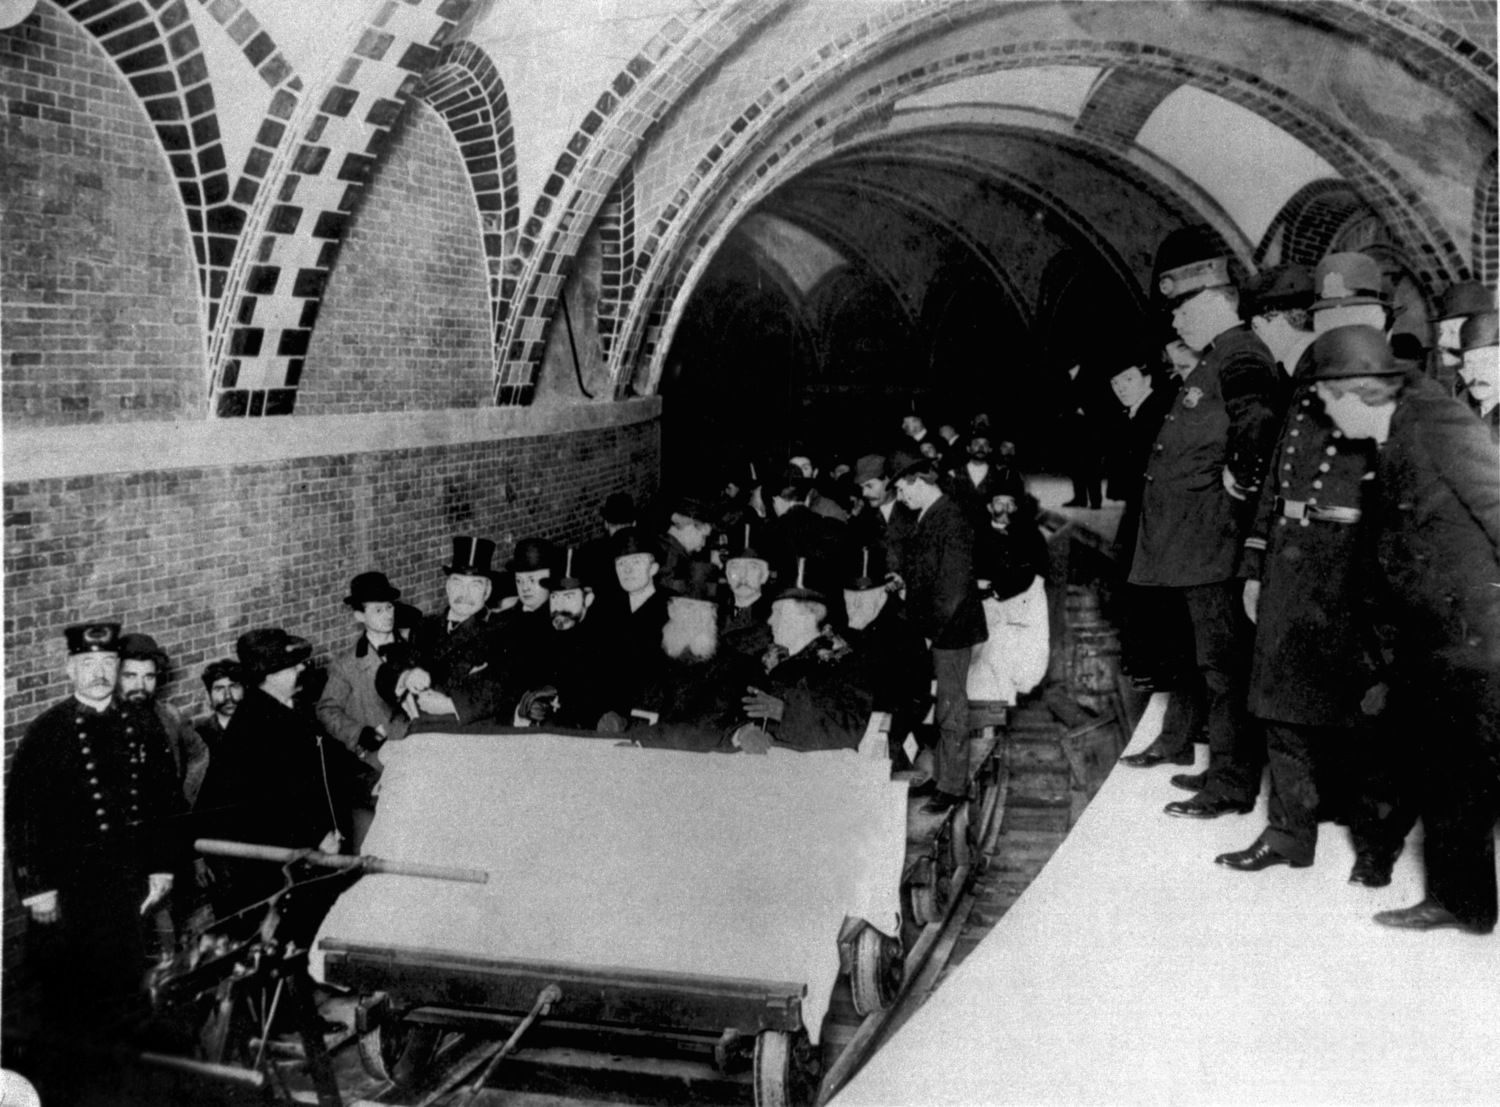 This group of financiers and city officials get a tour of New York City's first subway in January 1904 while the city's policemen stood by on the platform at City Hall Station. Seated toward the front of the ceremonial flat car are Alexander Orr, August Belmont, John B. McDonald, and Mayor George B. McClellen.